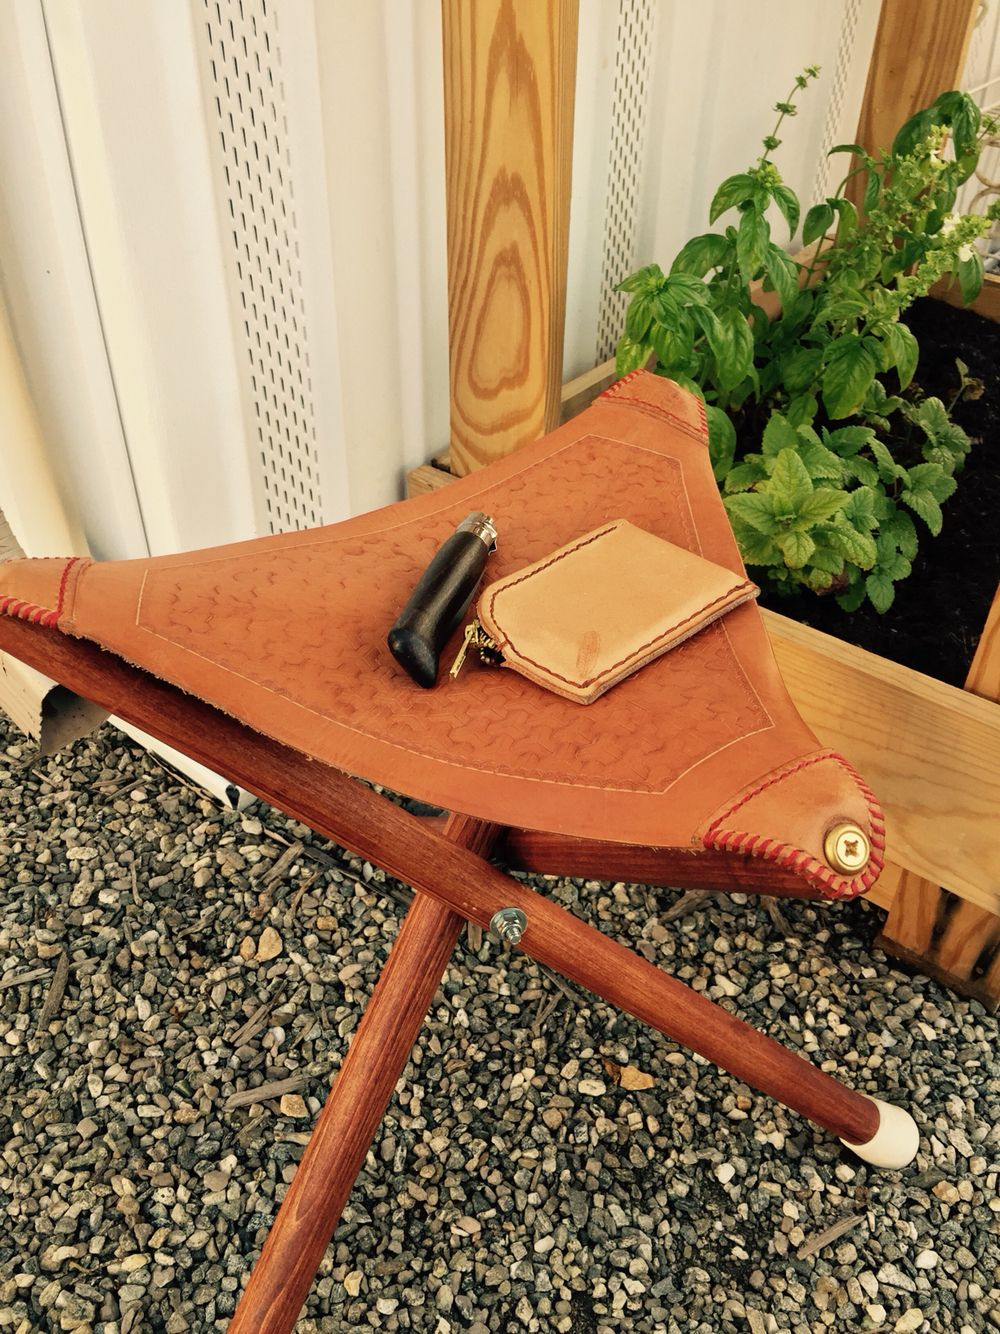 Everyday basics. Stool and wallet handmade by RedFeatherLeather. Knife mod by RedFeatherLeather.